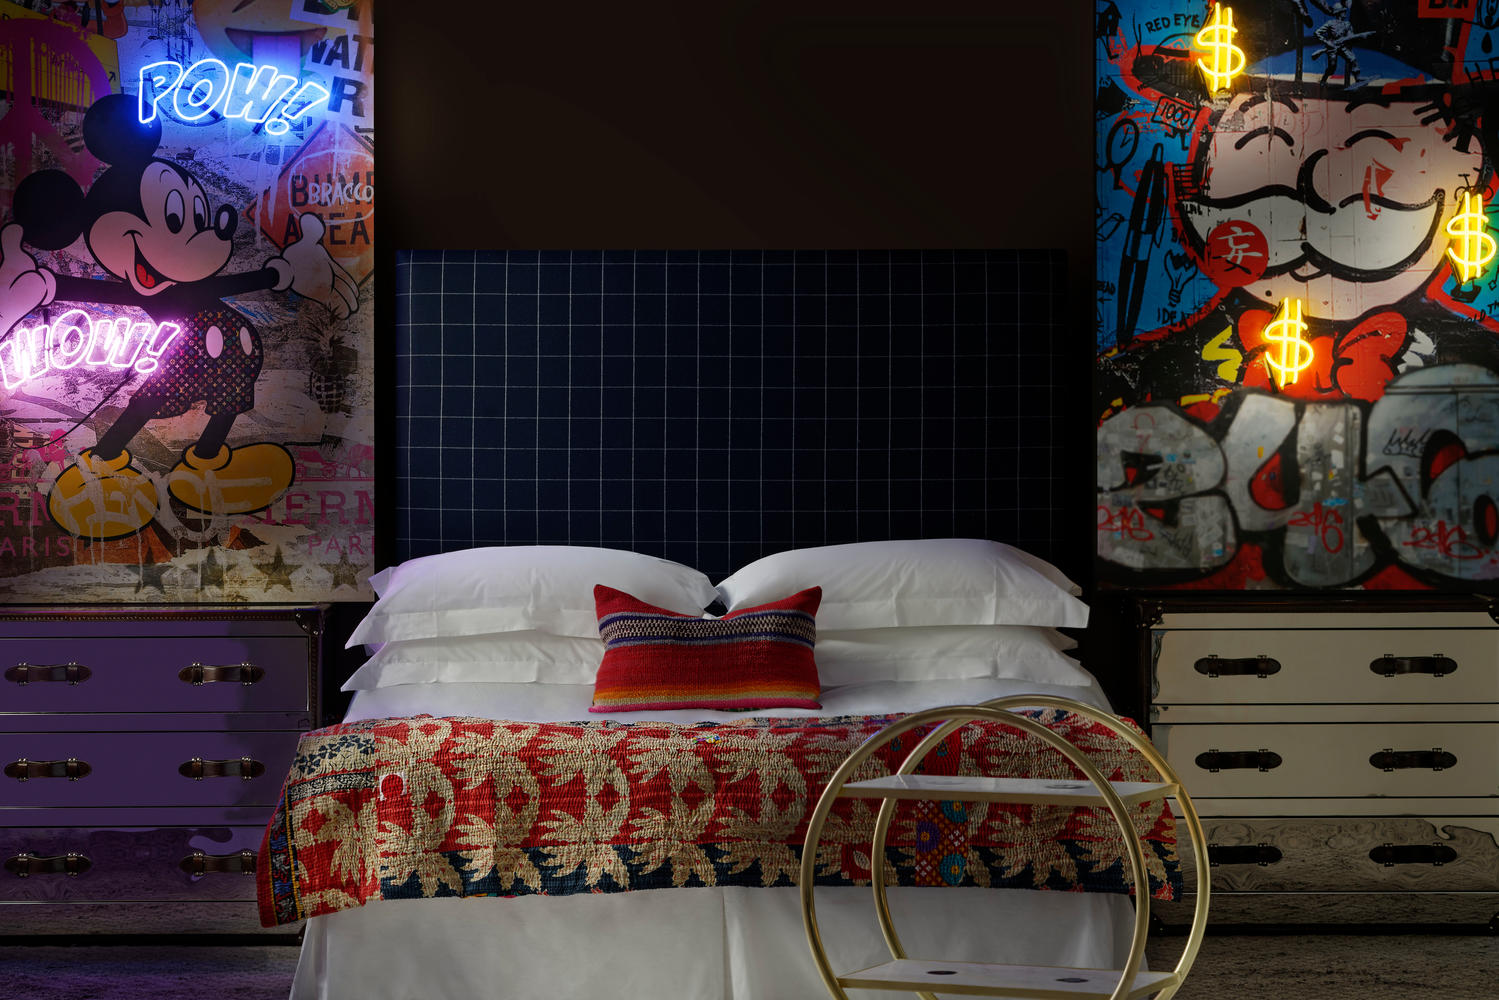 Sage_Custom_Headboard_in_Wales_Navy_with_Howard_steelleather_chest_of_drawers_a_Cici_bar_trolley_and_Micky_Mouse_and_Monopoly_Man_neon_artwork_